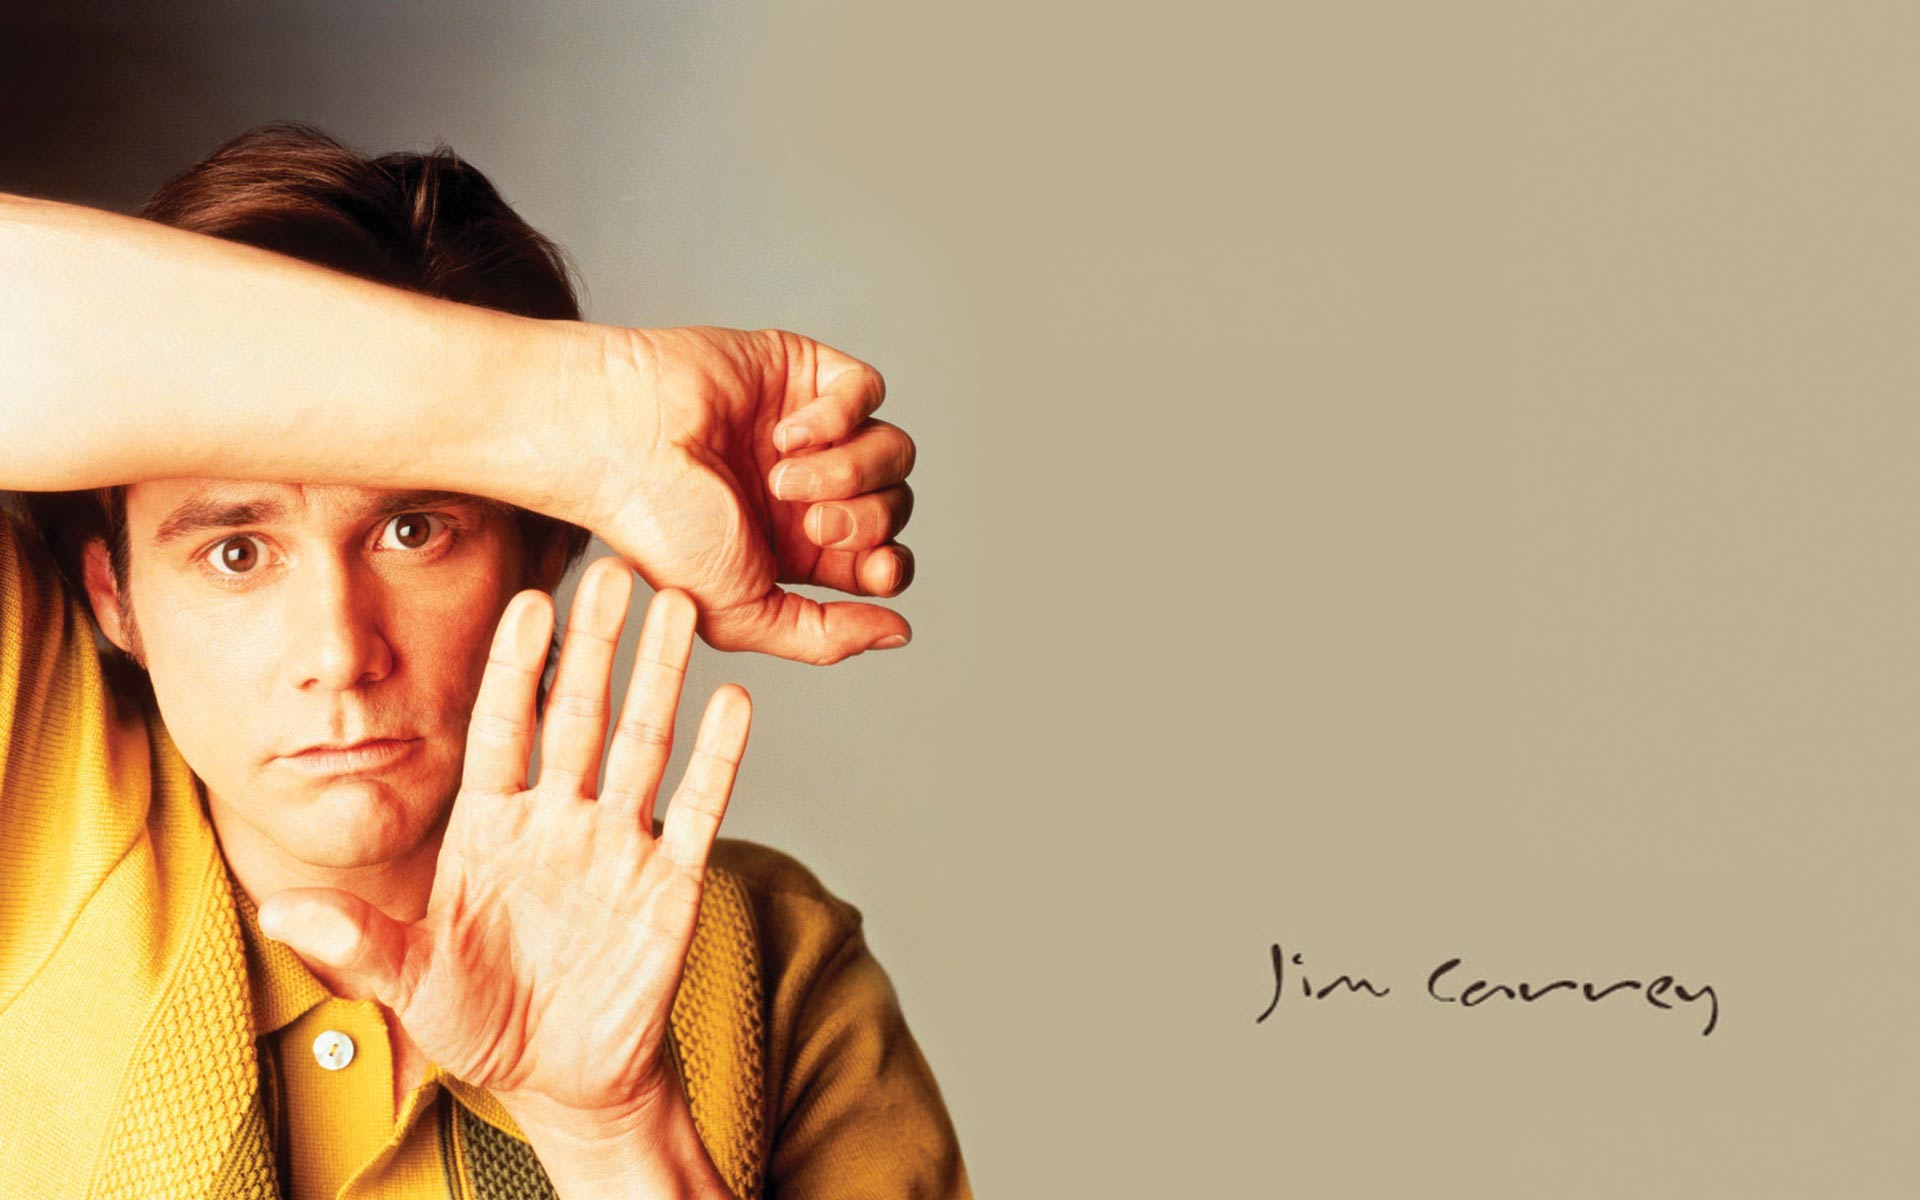 Jim Carrey Desktop wallpaper